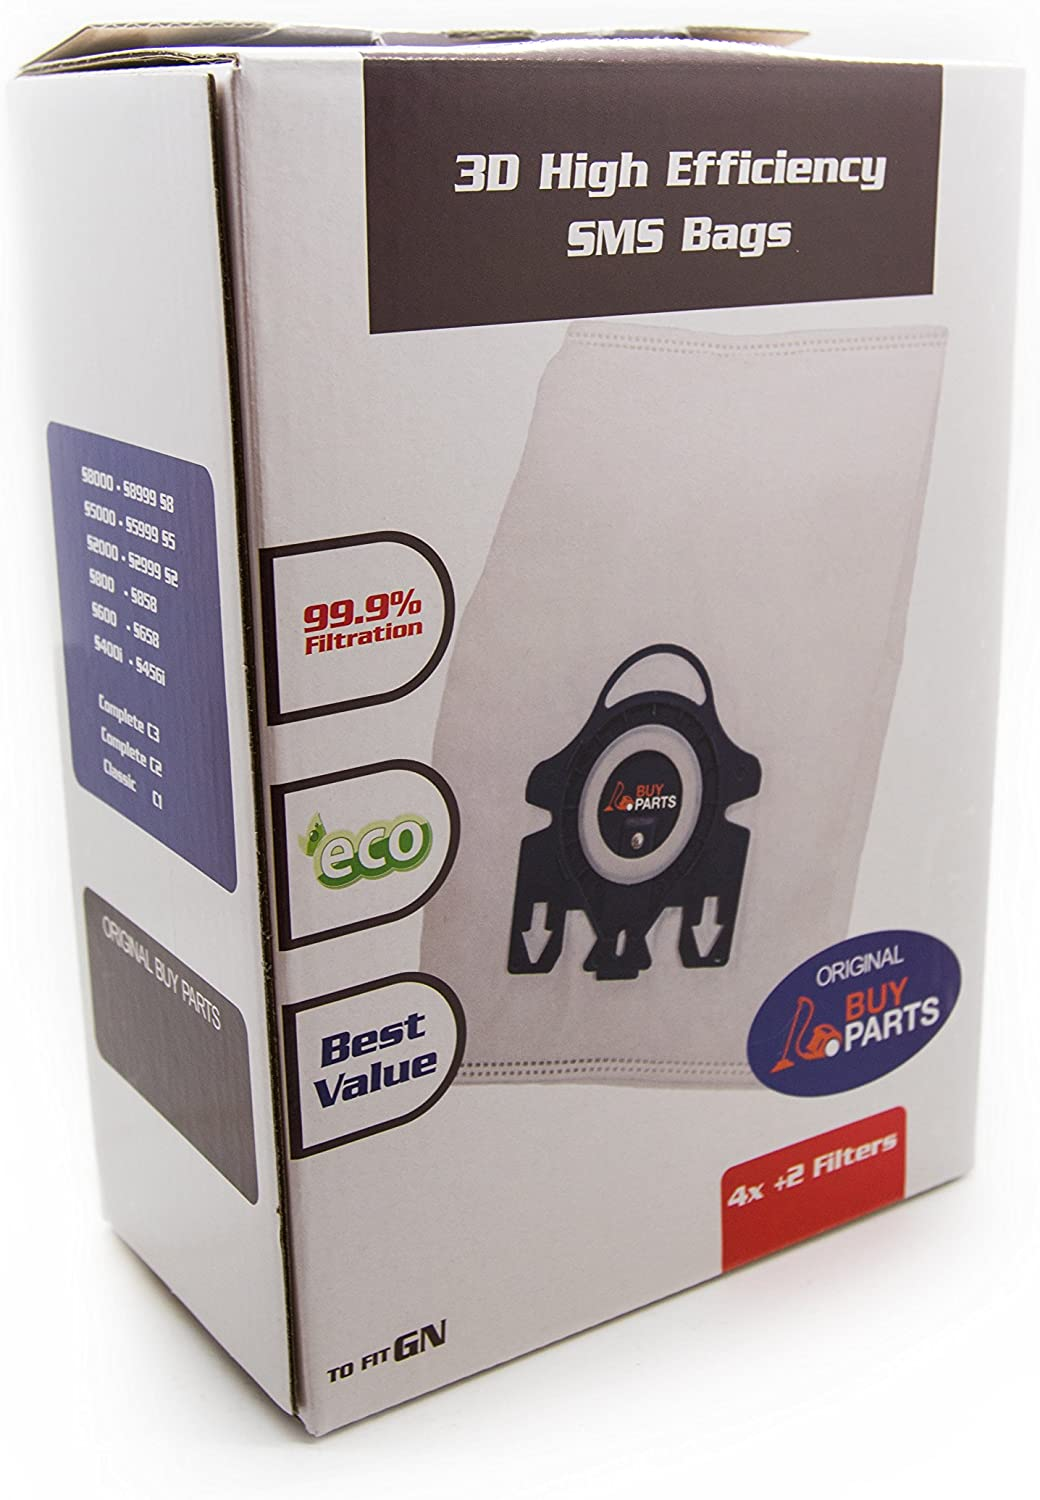 Miele AirClean 3D Efficiency Dust Bag, Type GN, 4 Bags & 2 Filters by buyparts